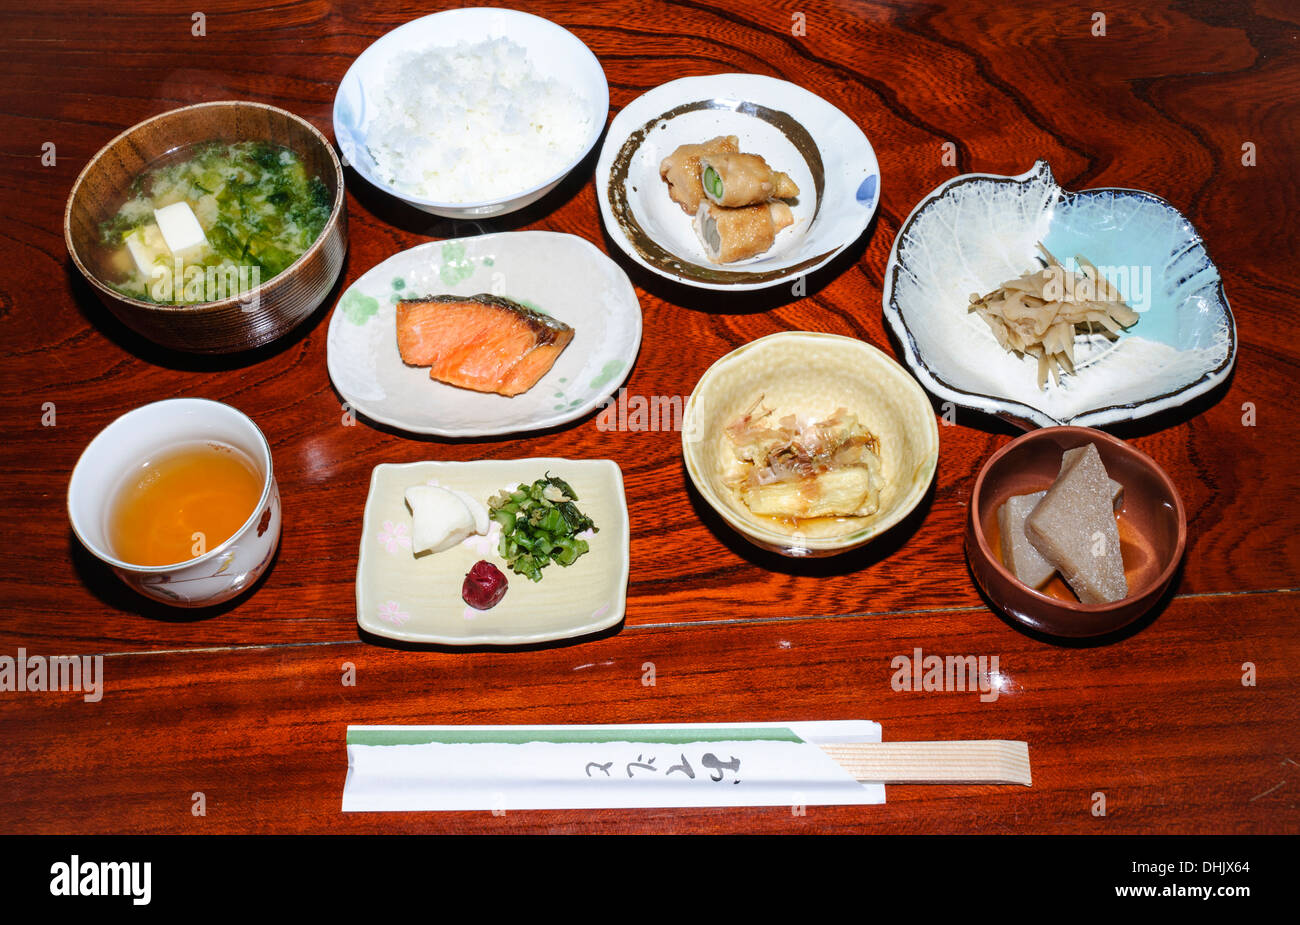 Washoku: Traditional Japanese breakfast meal as served in a ryokan (traditional style inn), with many courses served at once. Japan, food. - Stock Image